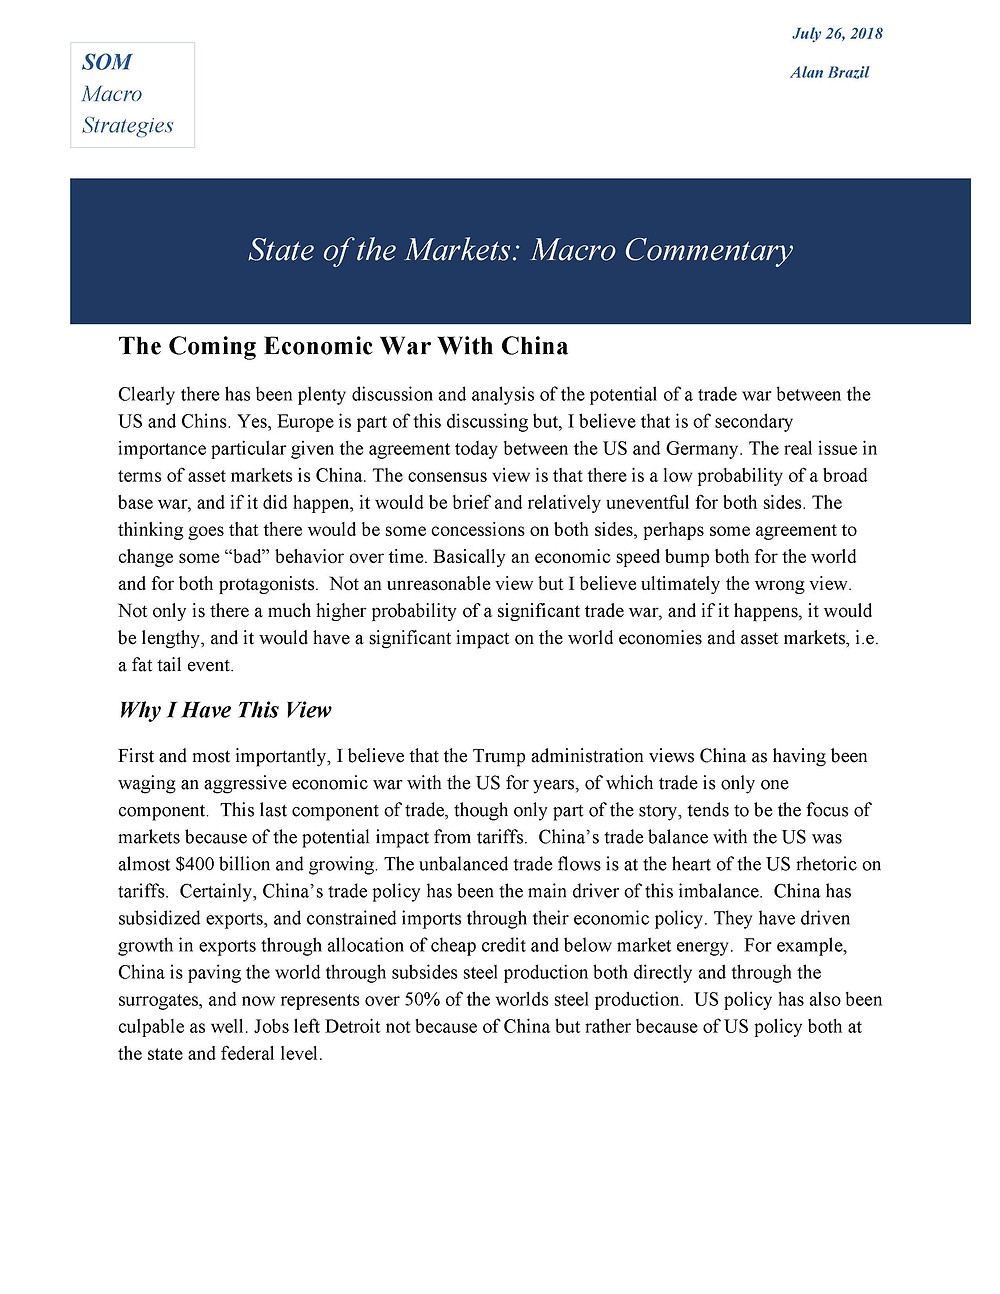 Here is my latest macro commentary